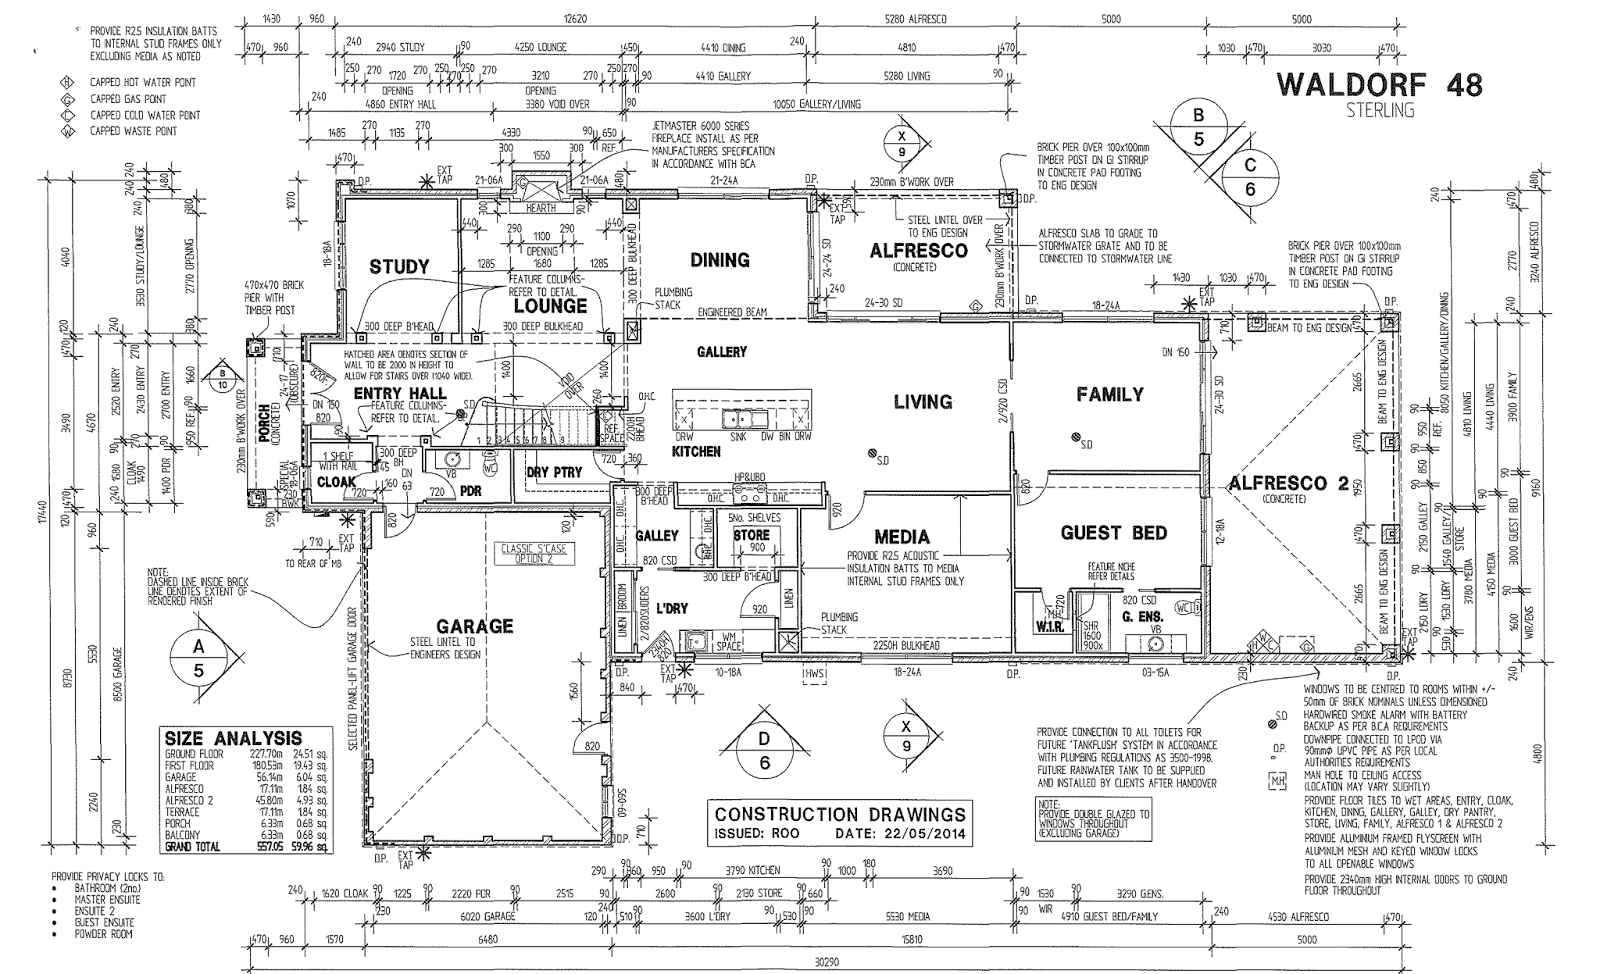 Porter Davis Homes Floor Plans Floor Plan And Elevations Building The Waldorf 48 With